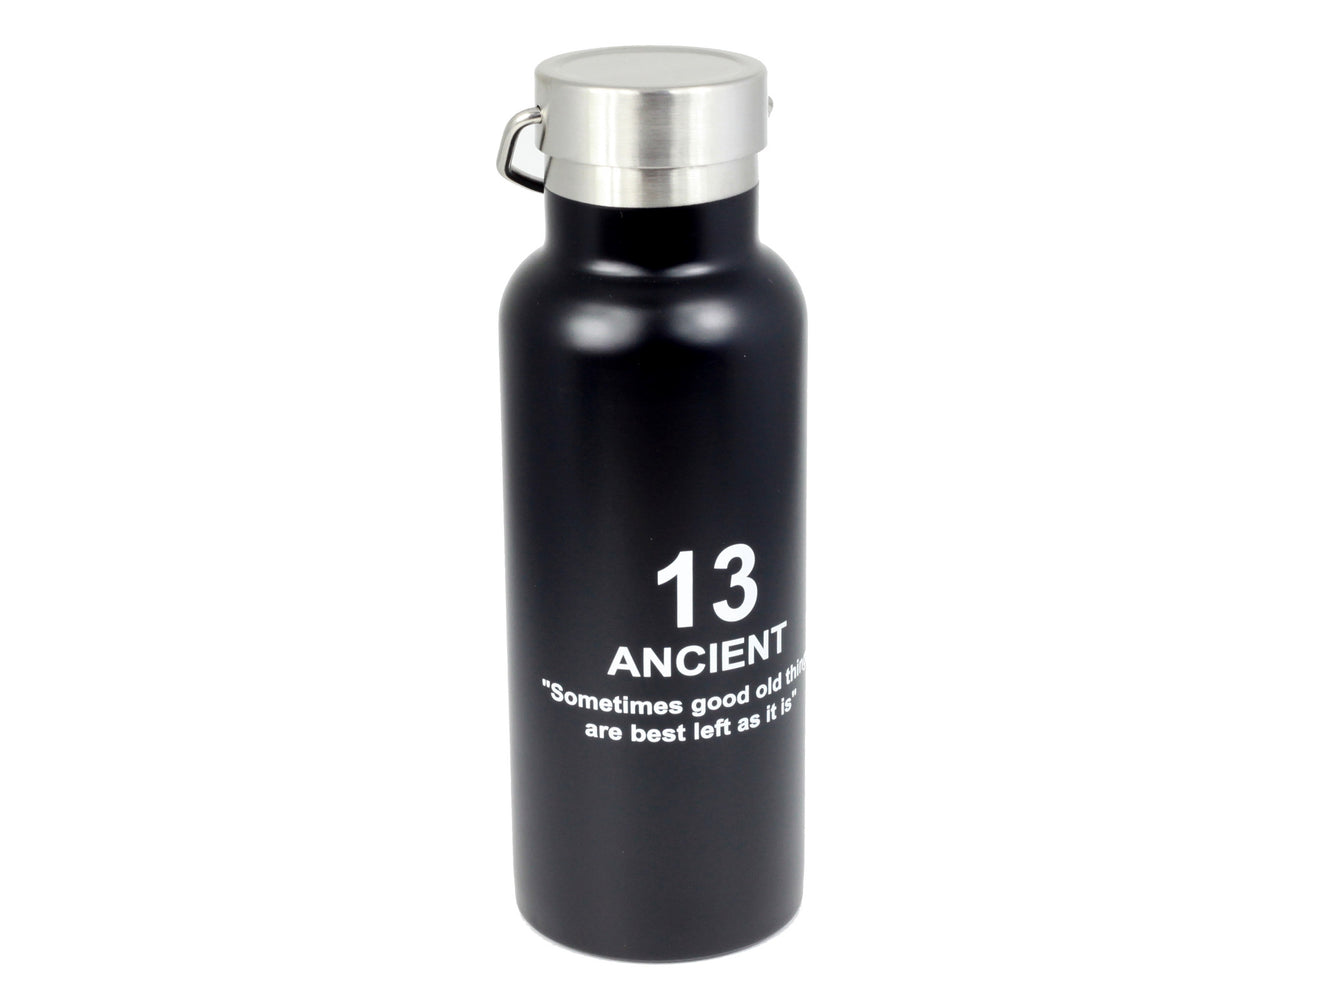 Ancient Stainless Bottle | Black by Showa - Bento&co Japanese Bento Lunch Boxes and Kitchenware Specialists